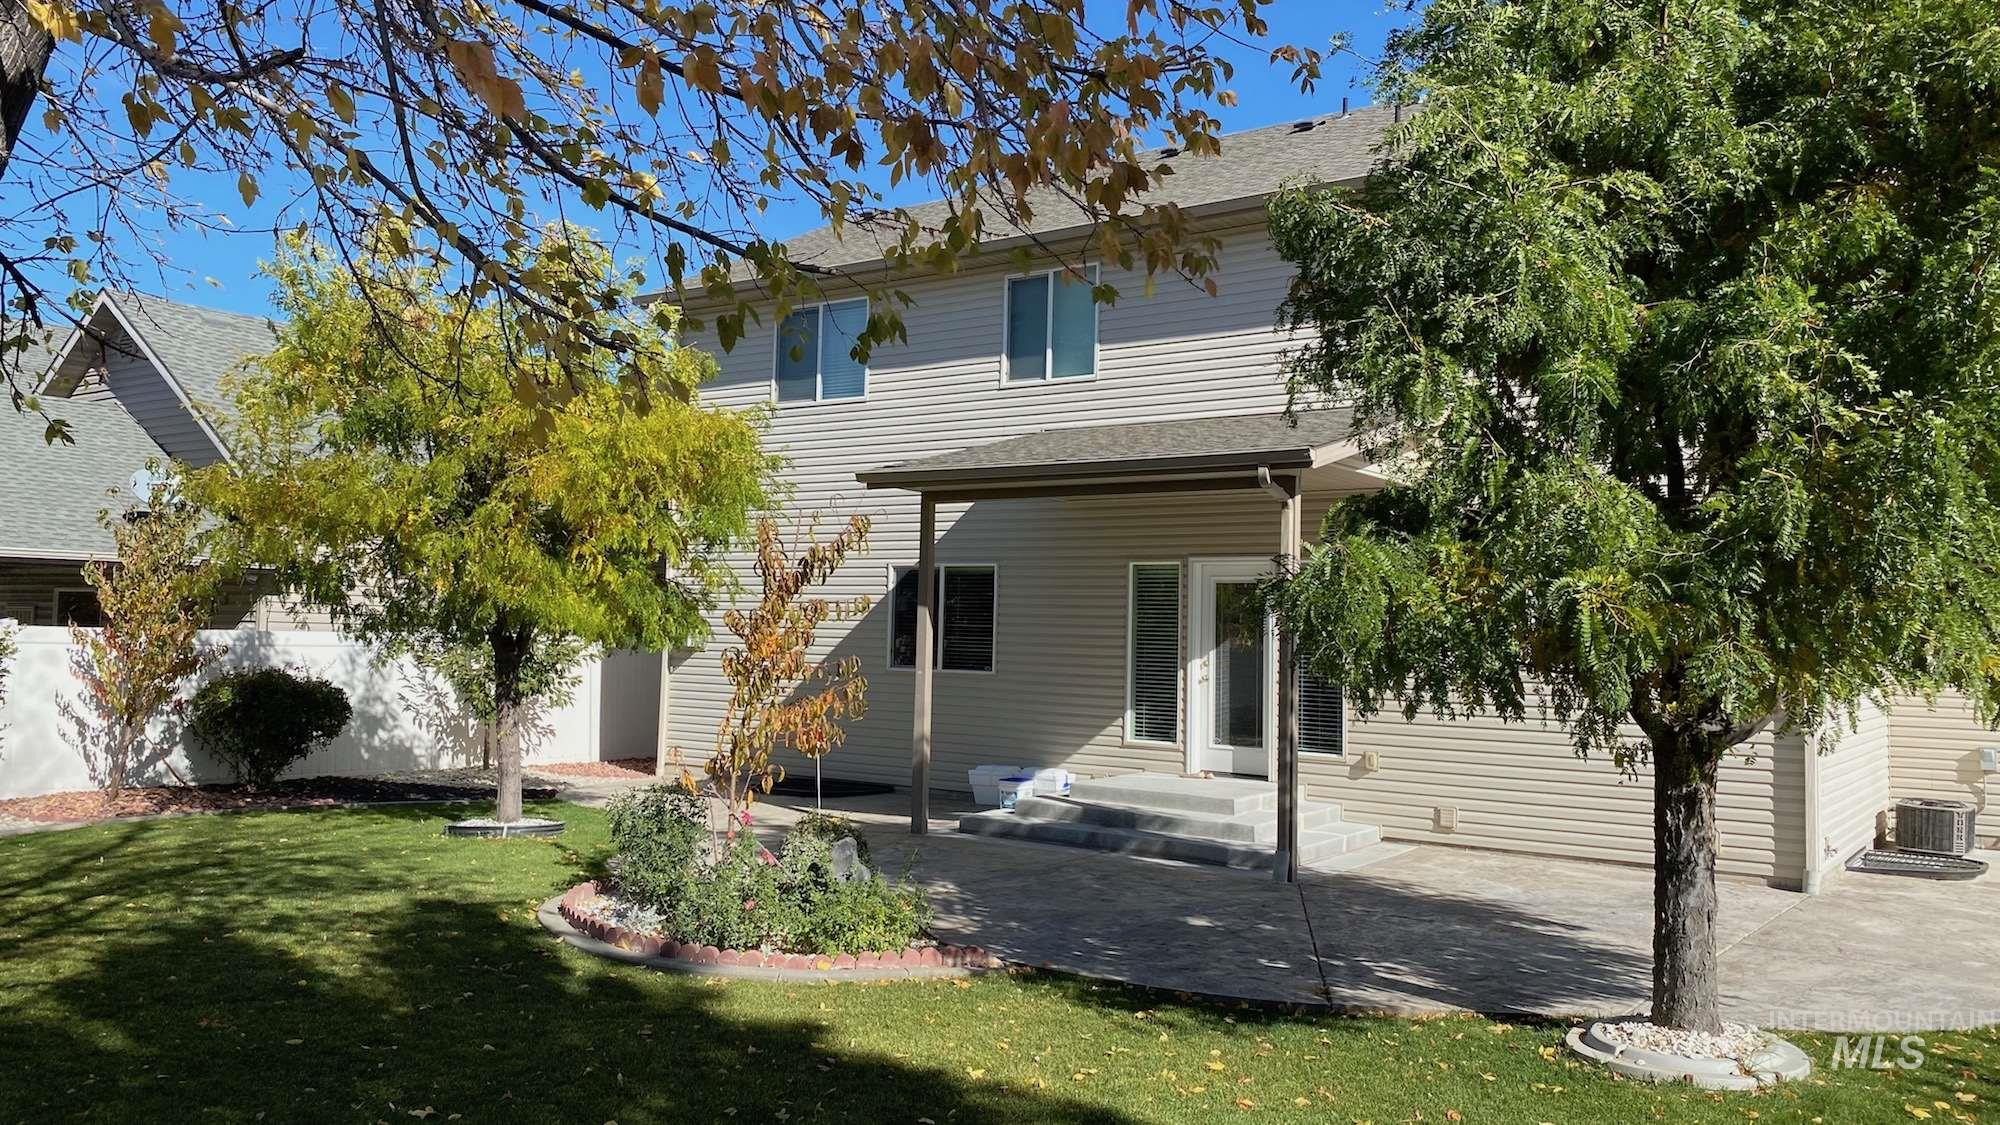 631 Sunbeam Dr., Twin Falls, Idaho 83301, 5 Bedrooms, 3.5 Bathrooms, Residential For Sale, Price $465,000, 98784778